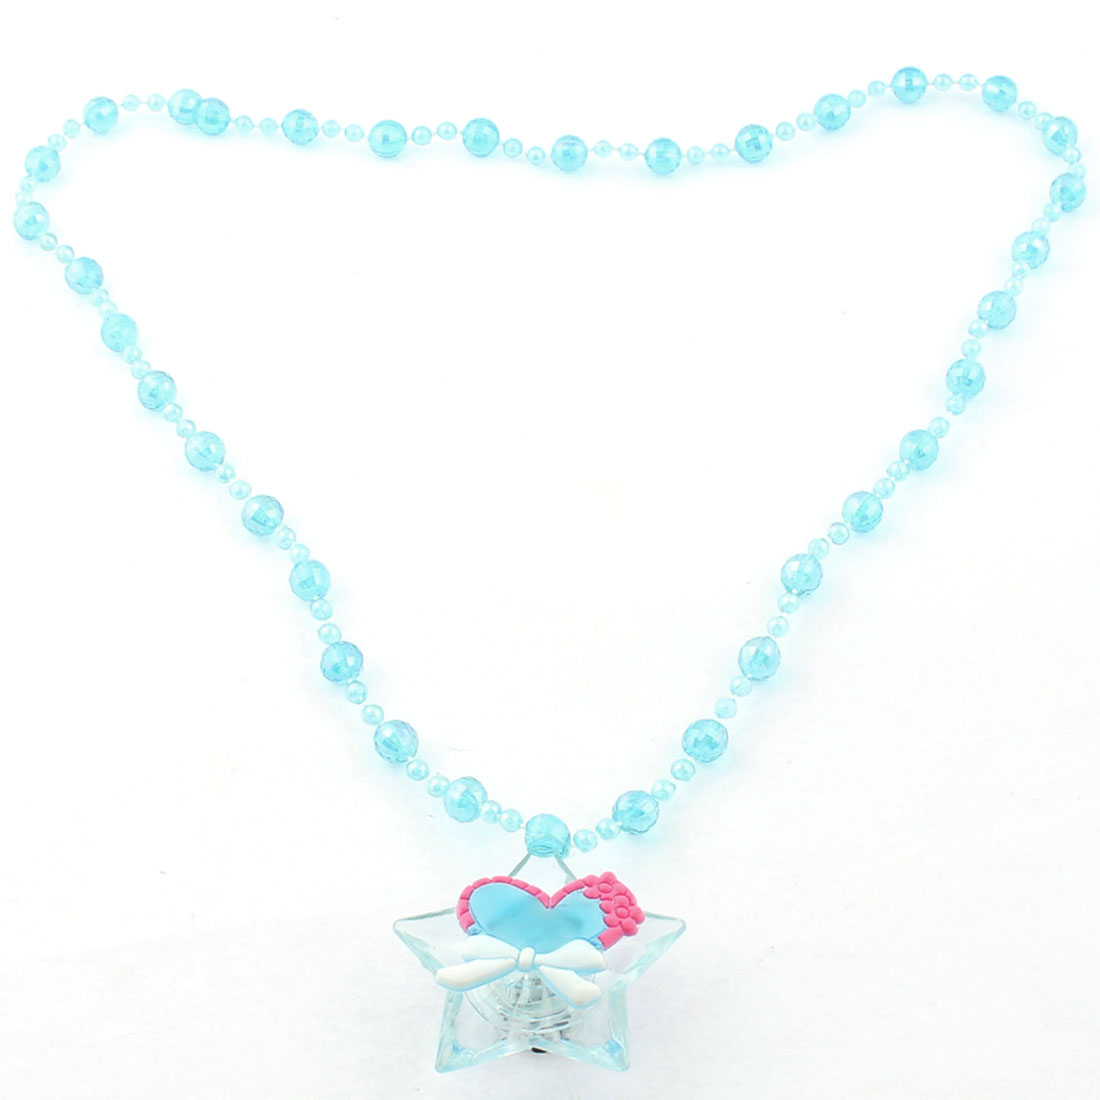 Star Pendant Neck Glow Decor Light Up LED Flashing Necklace Blue Clear